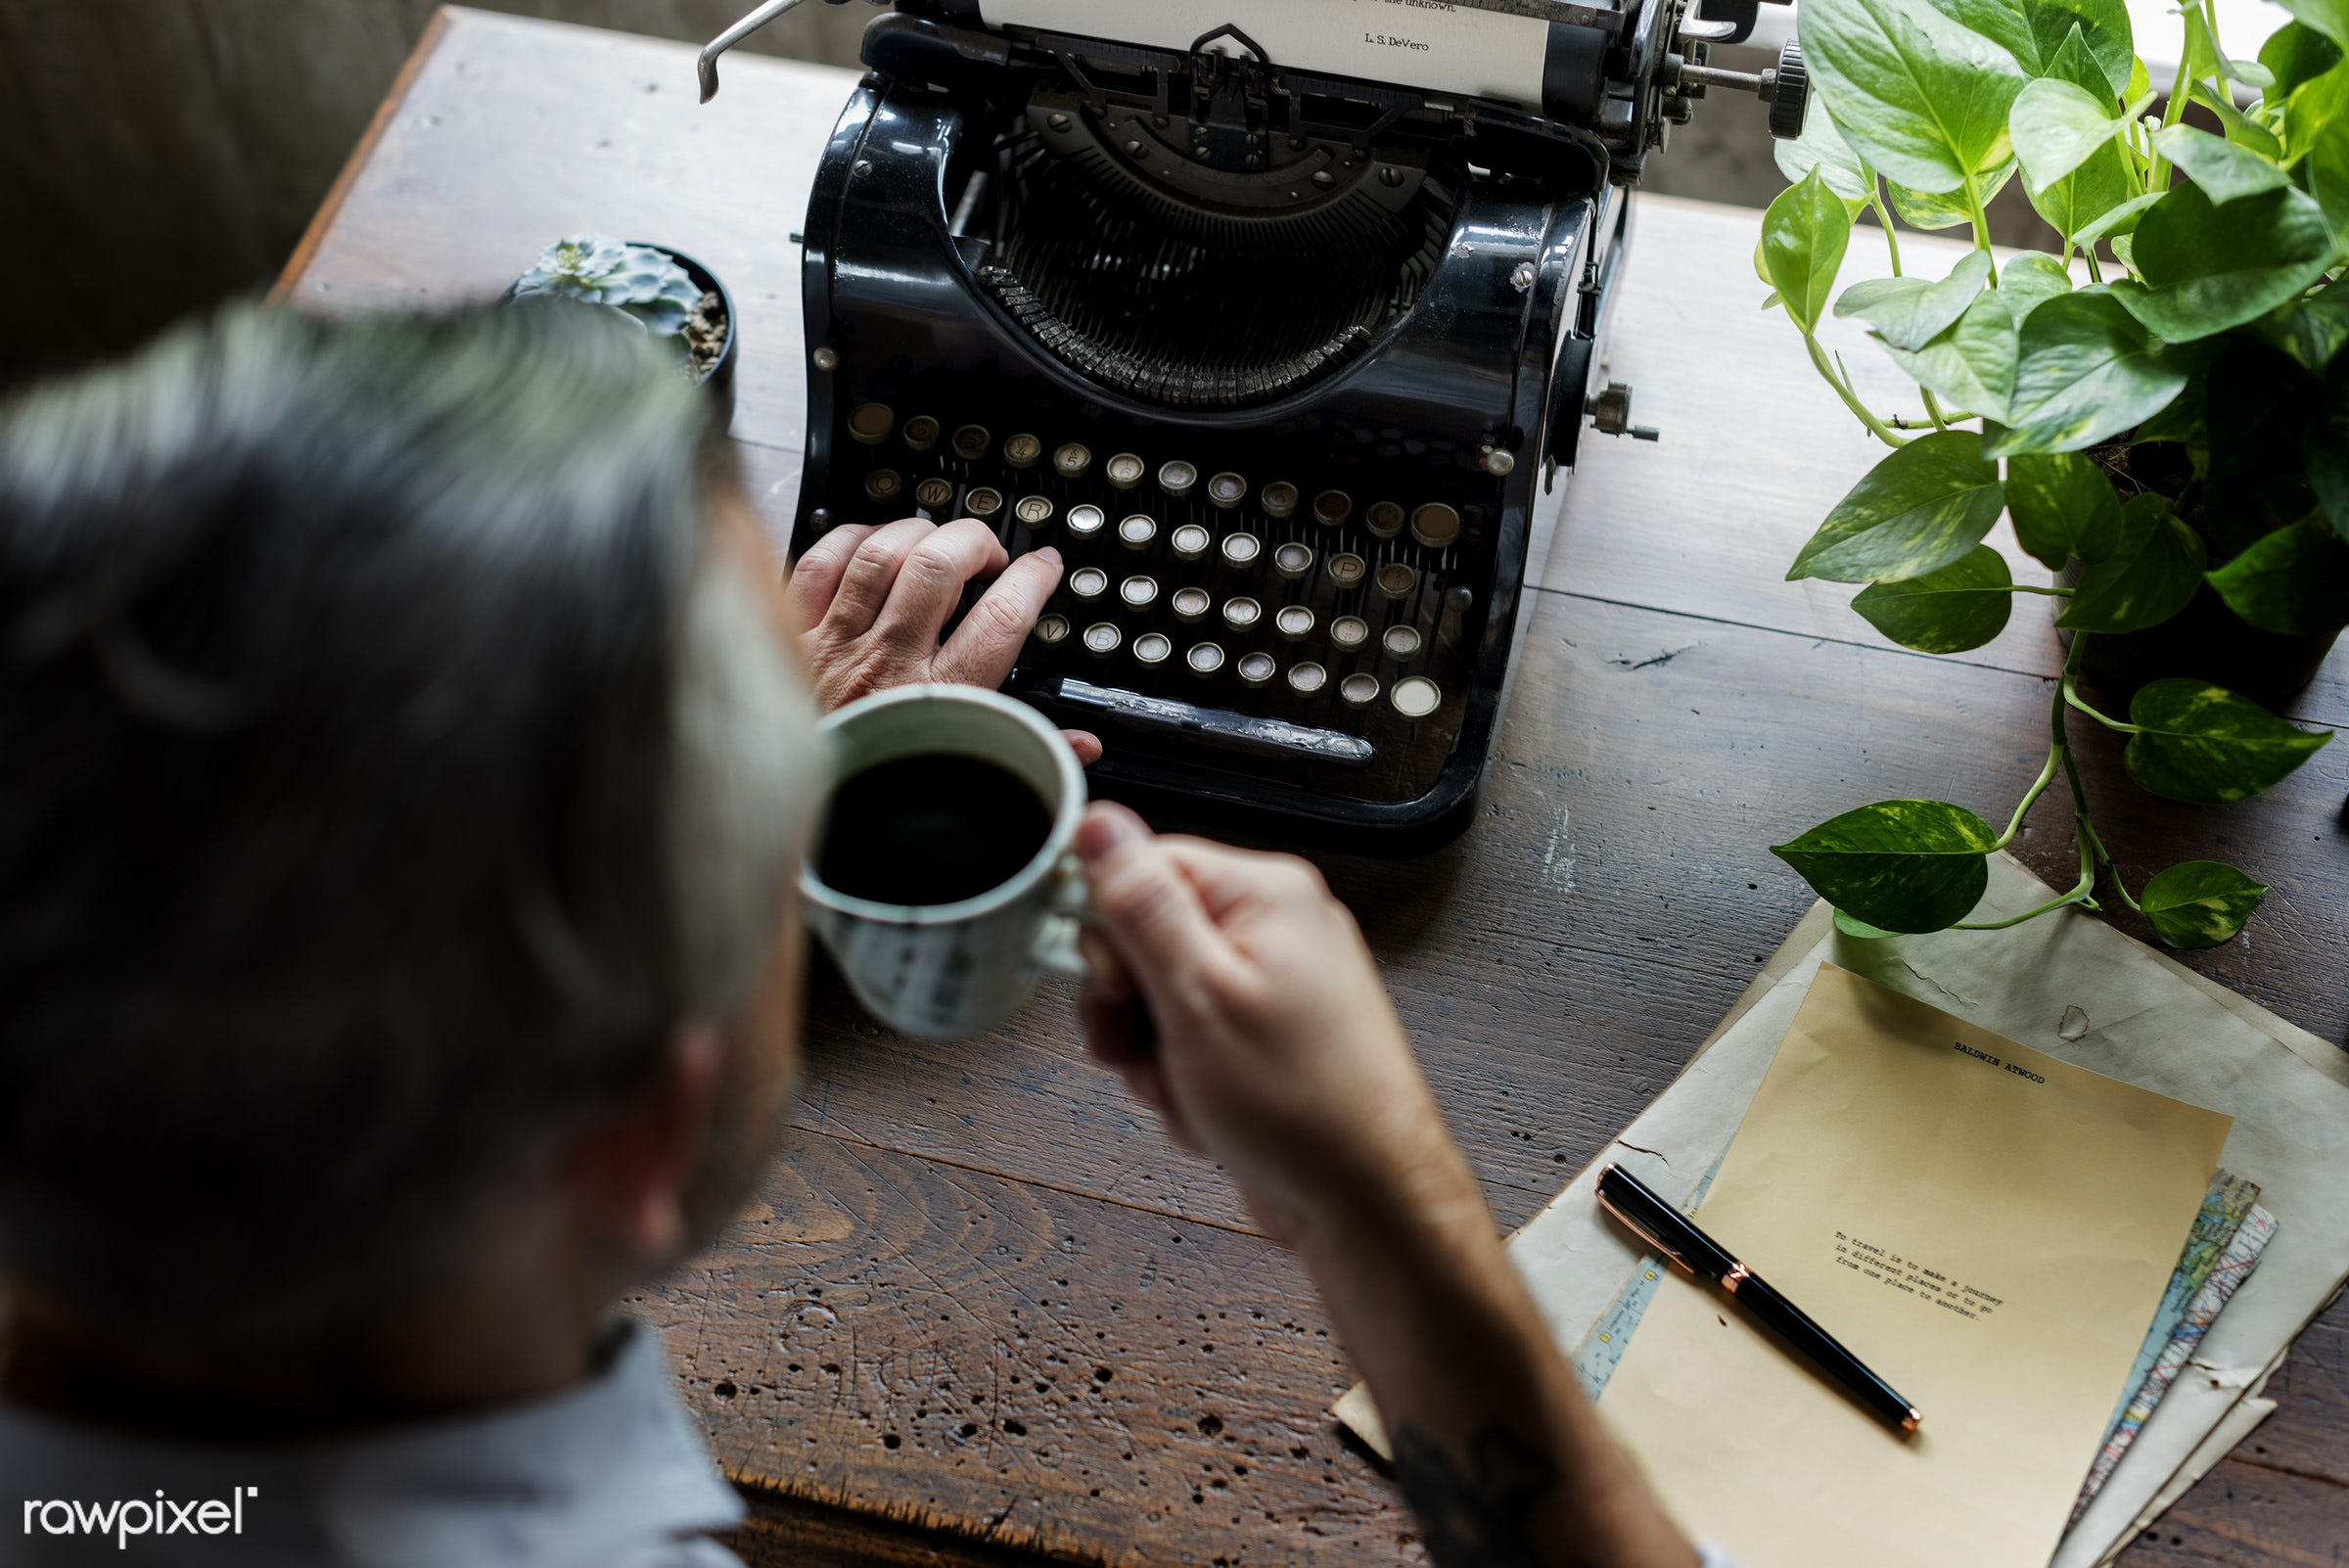 plant, drinking, workspace, paper, retro, workplace, drinks, hands, typewriter, typing, men, working, aerial view, classic,...